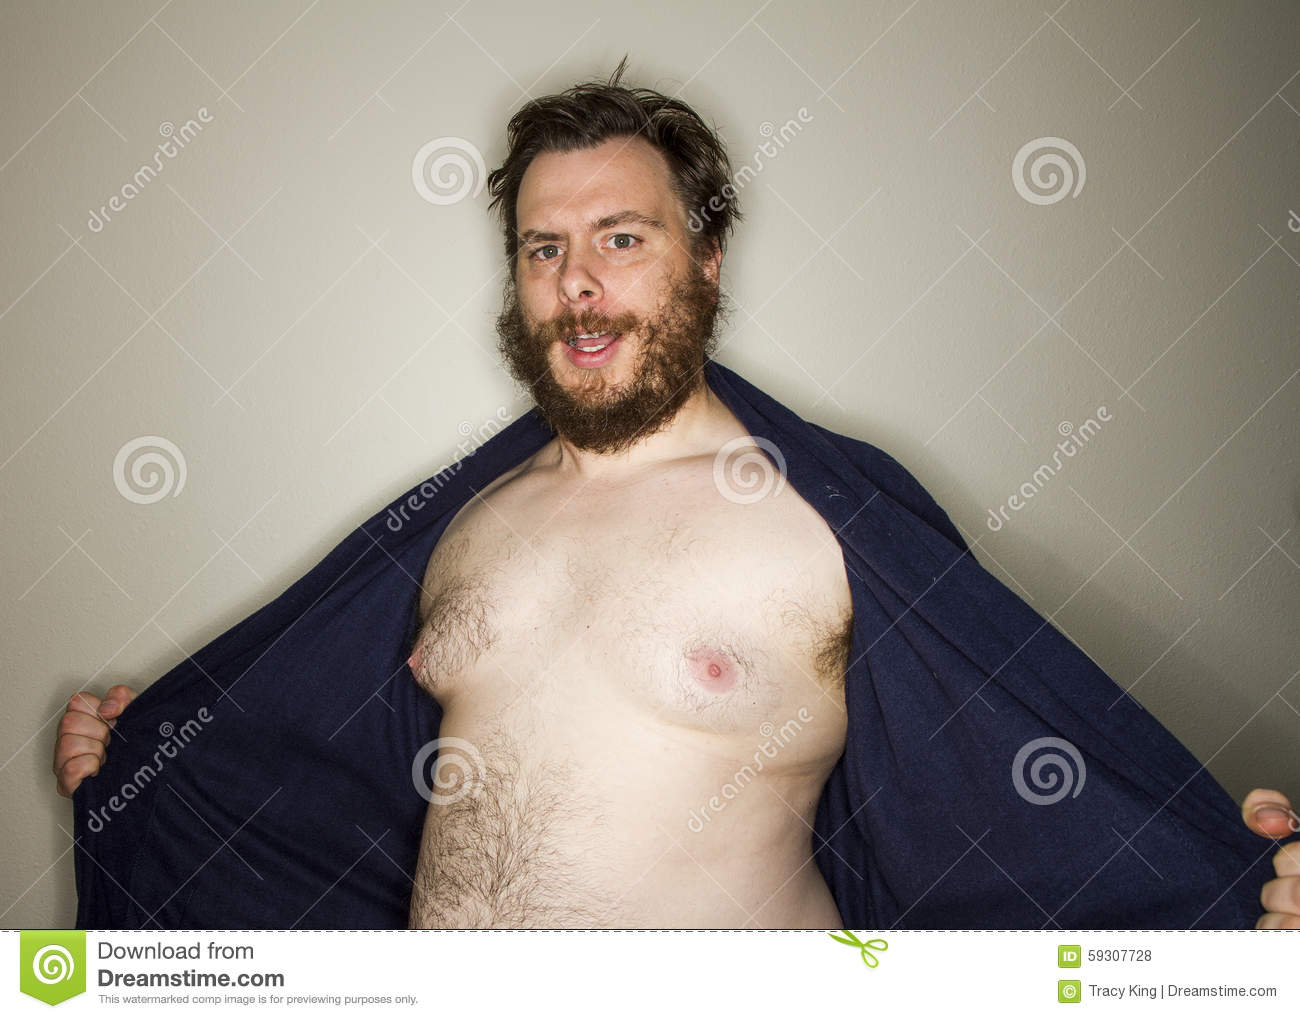 Men body naked Fat